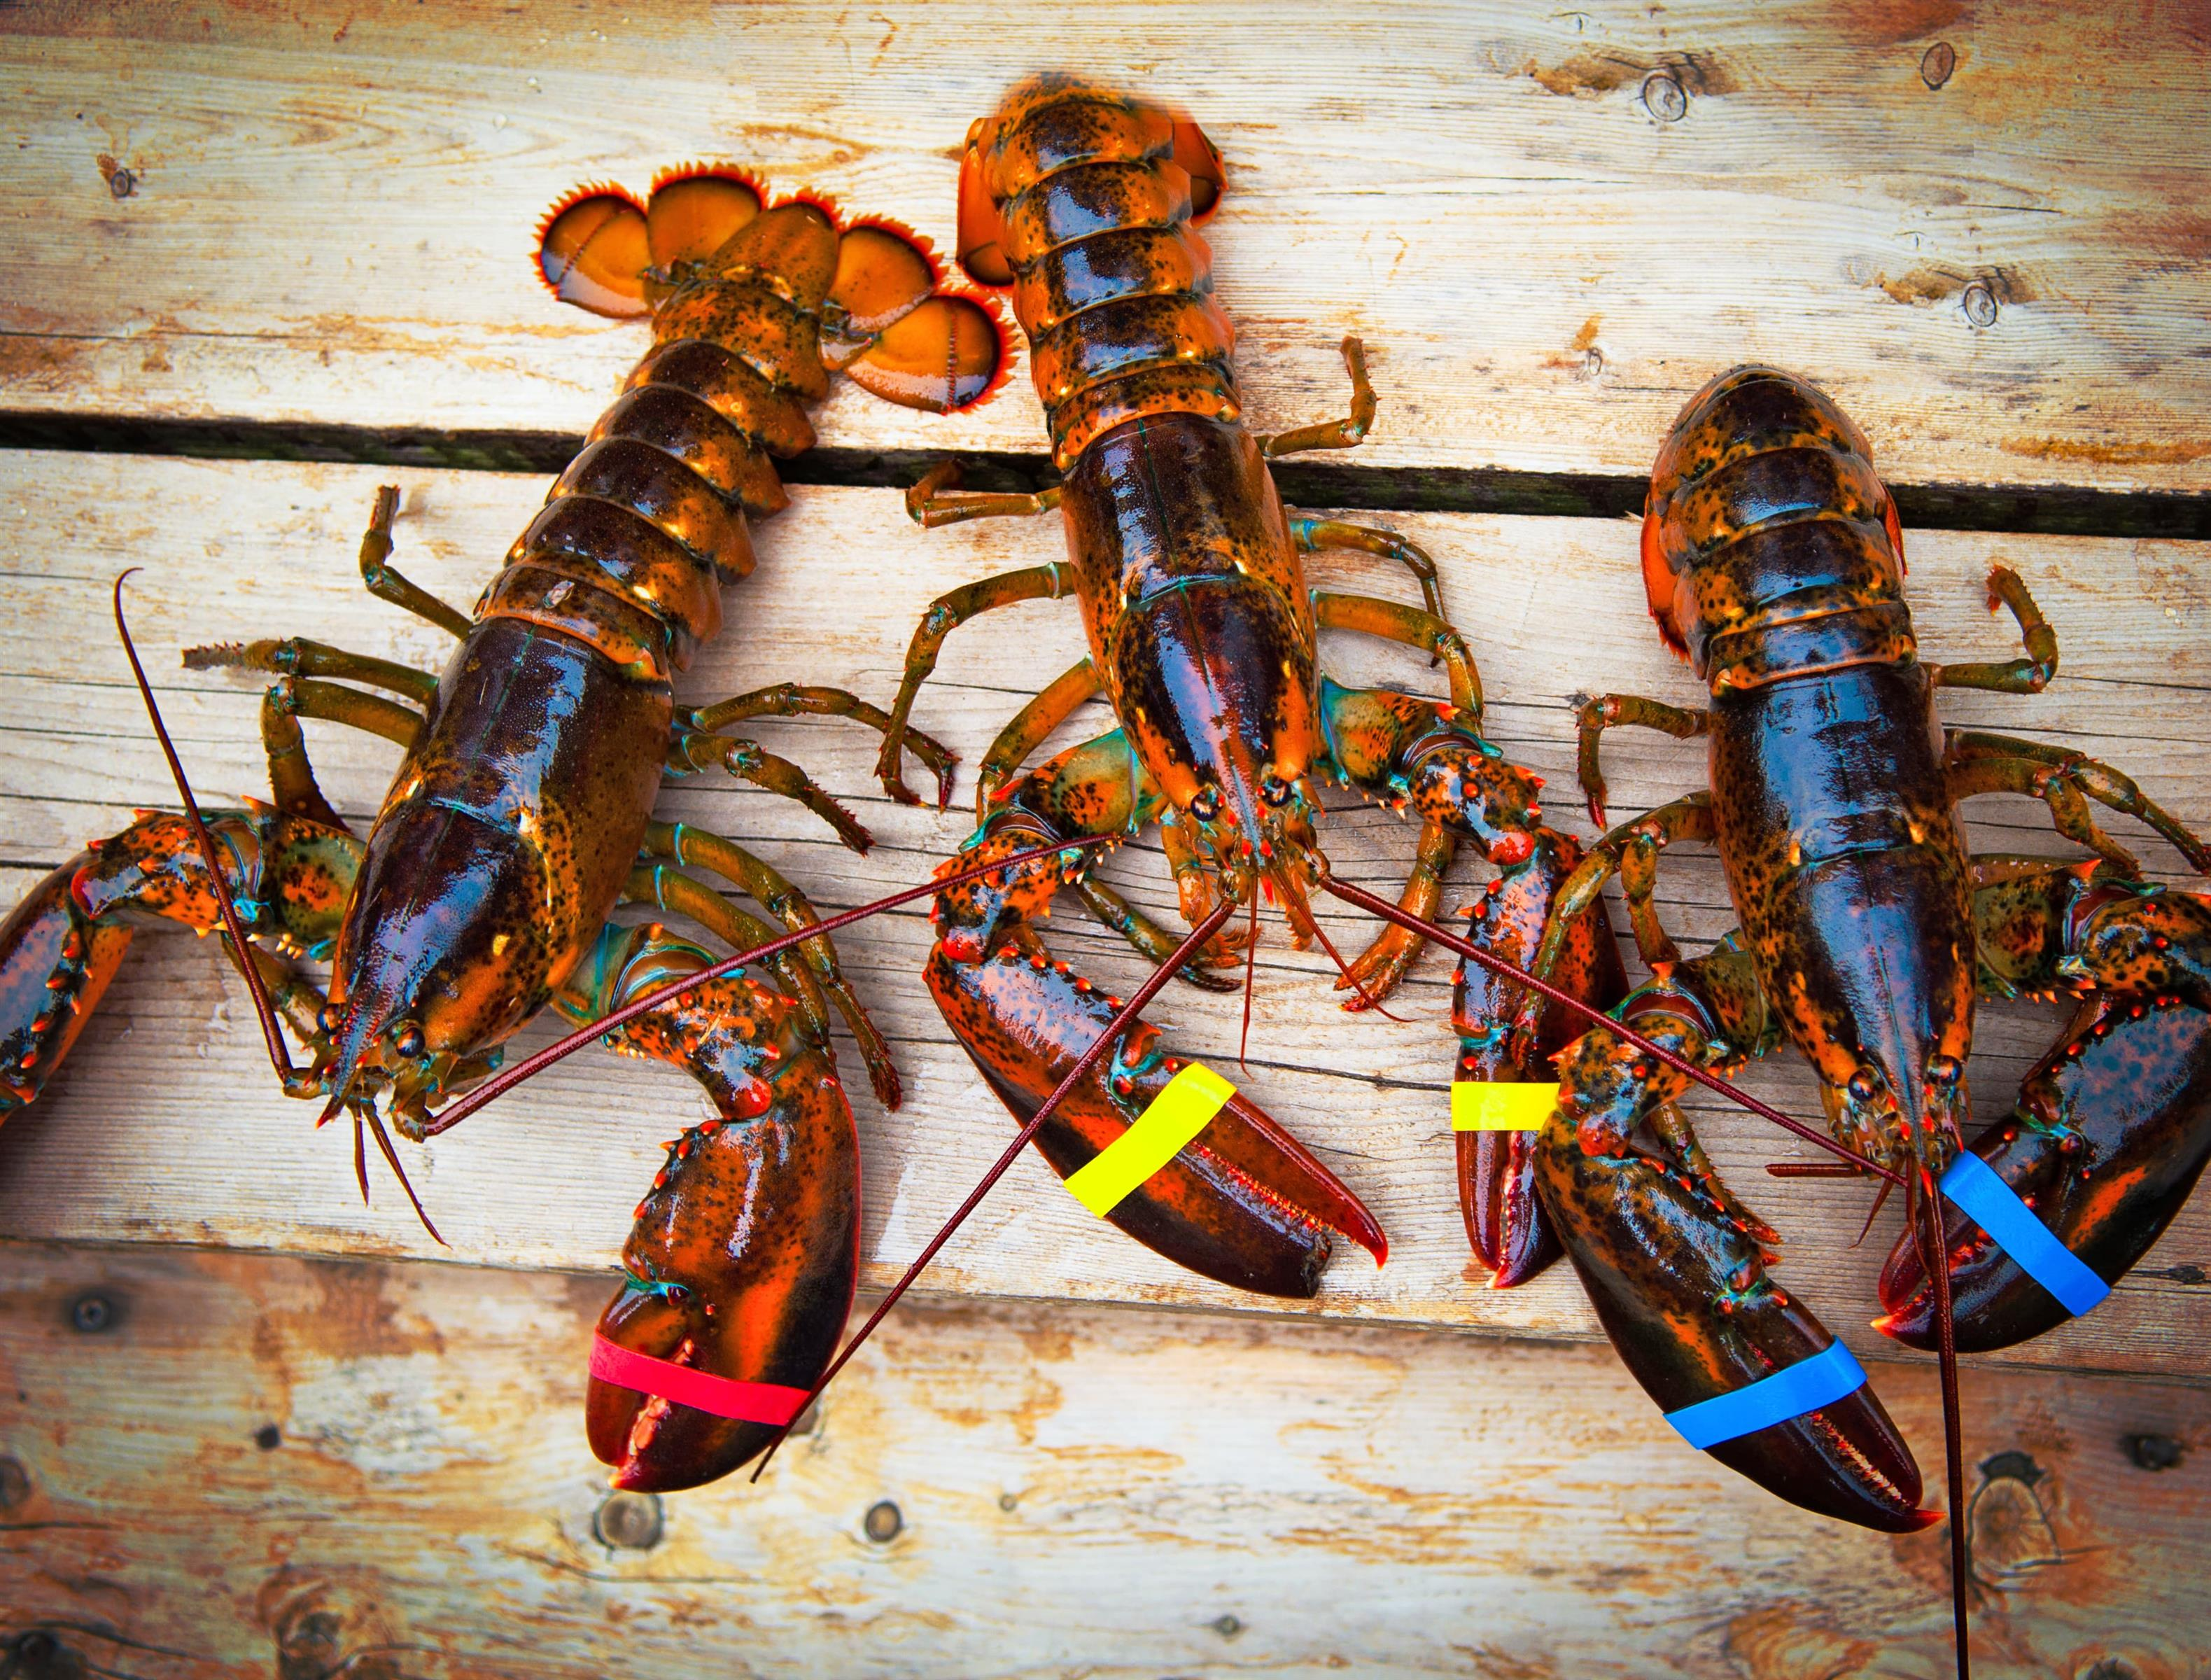 Live lobsters on a wood background